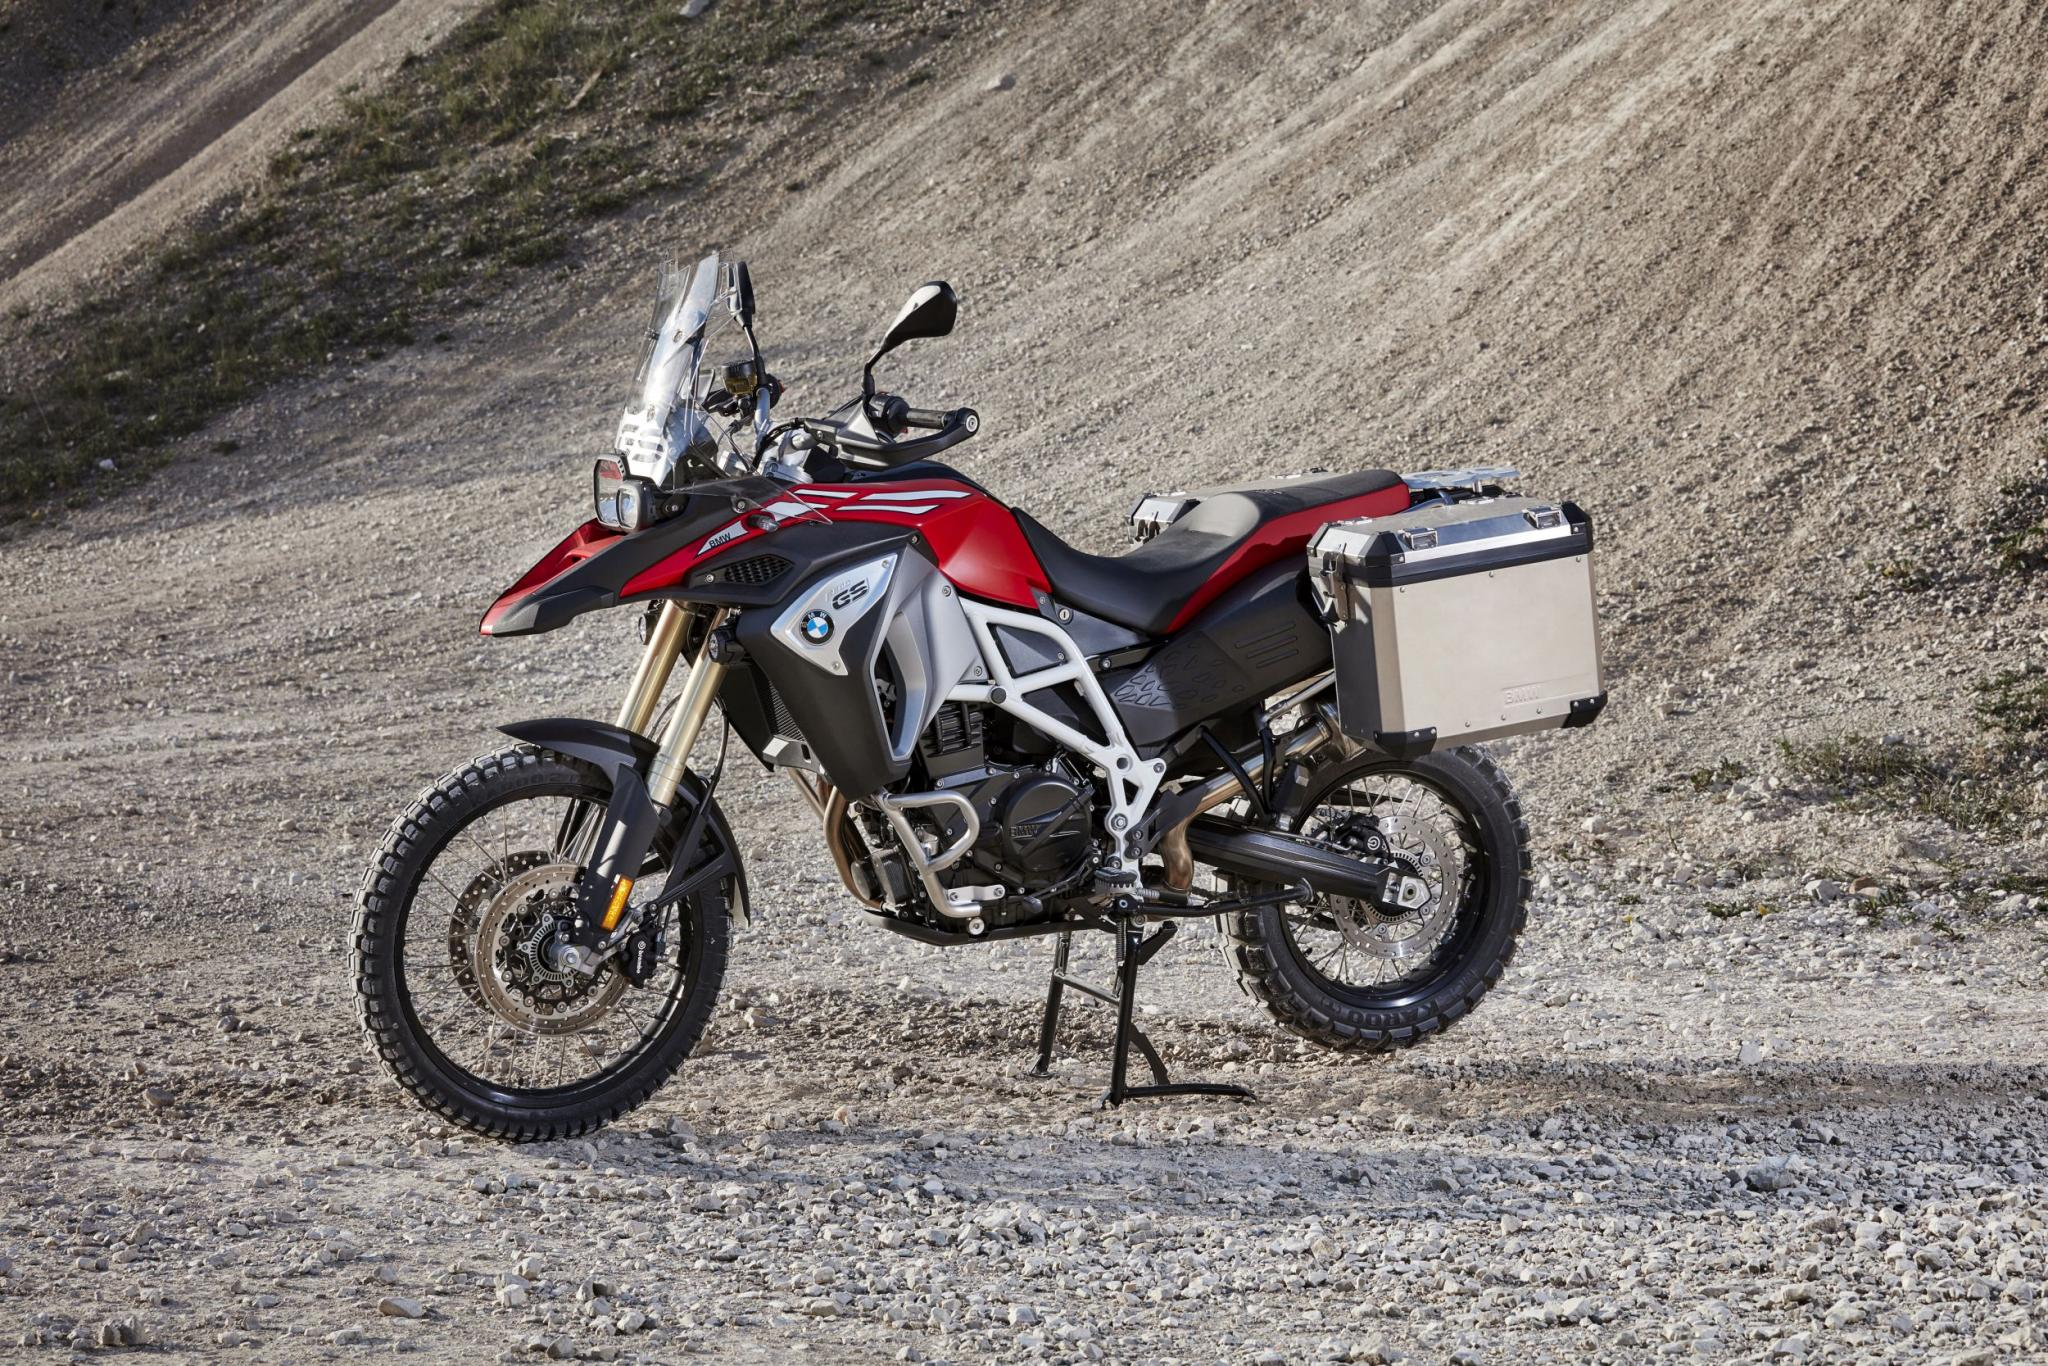 bmw f 800 gs adventure bilder und technische daten. Black Bedroom Furniture Sets. Home Design Ideas